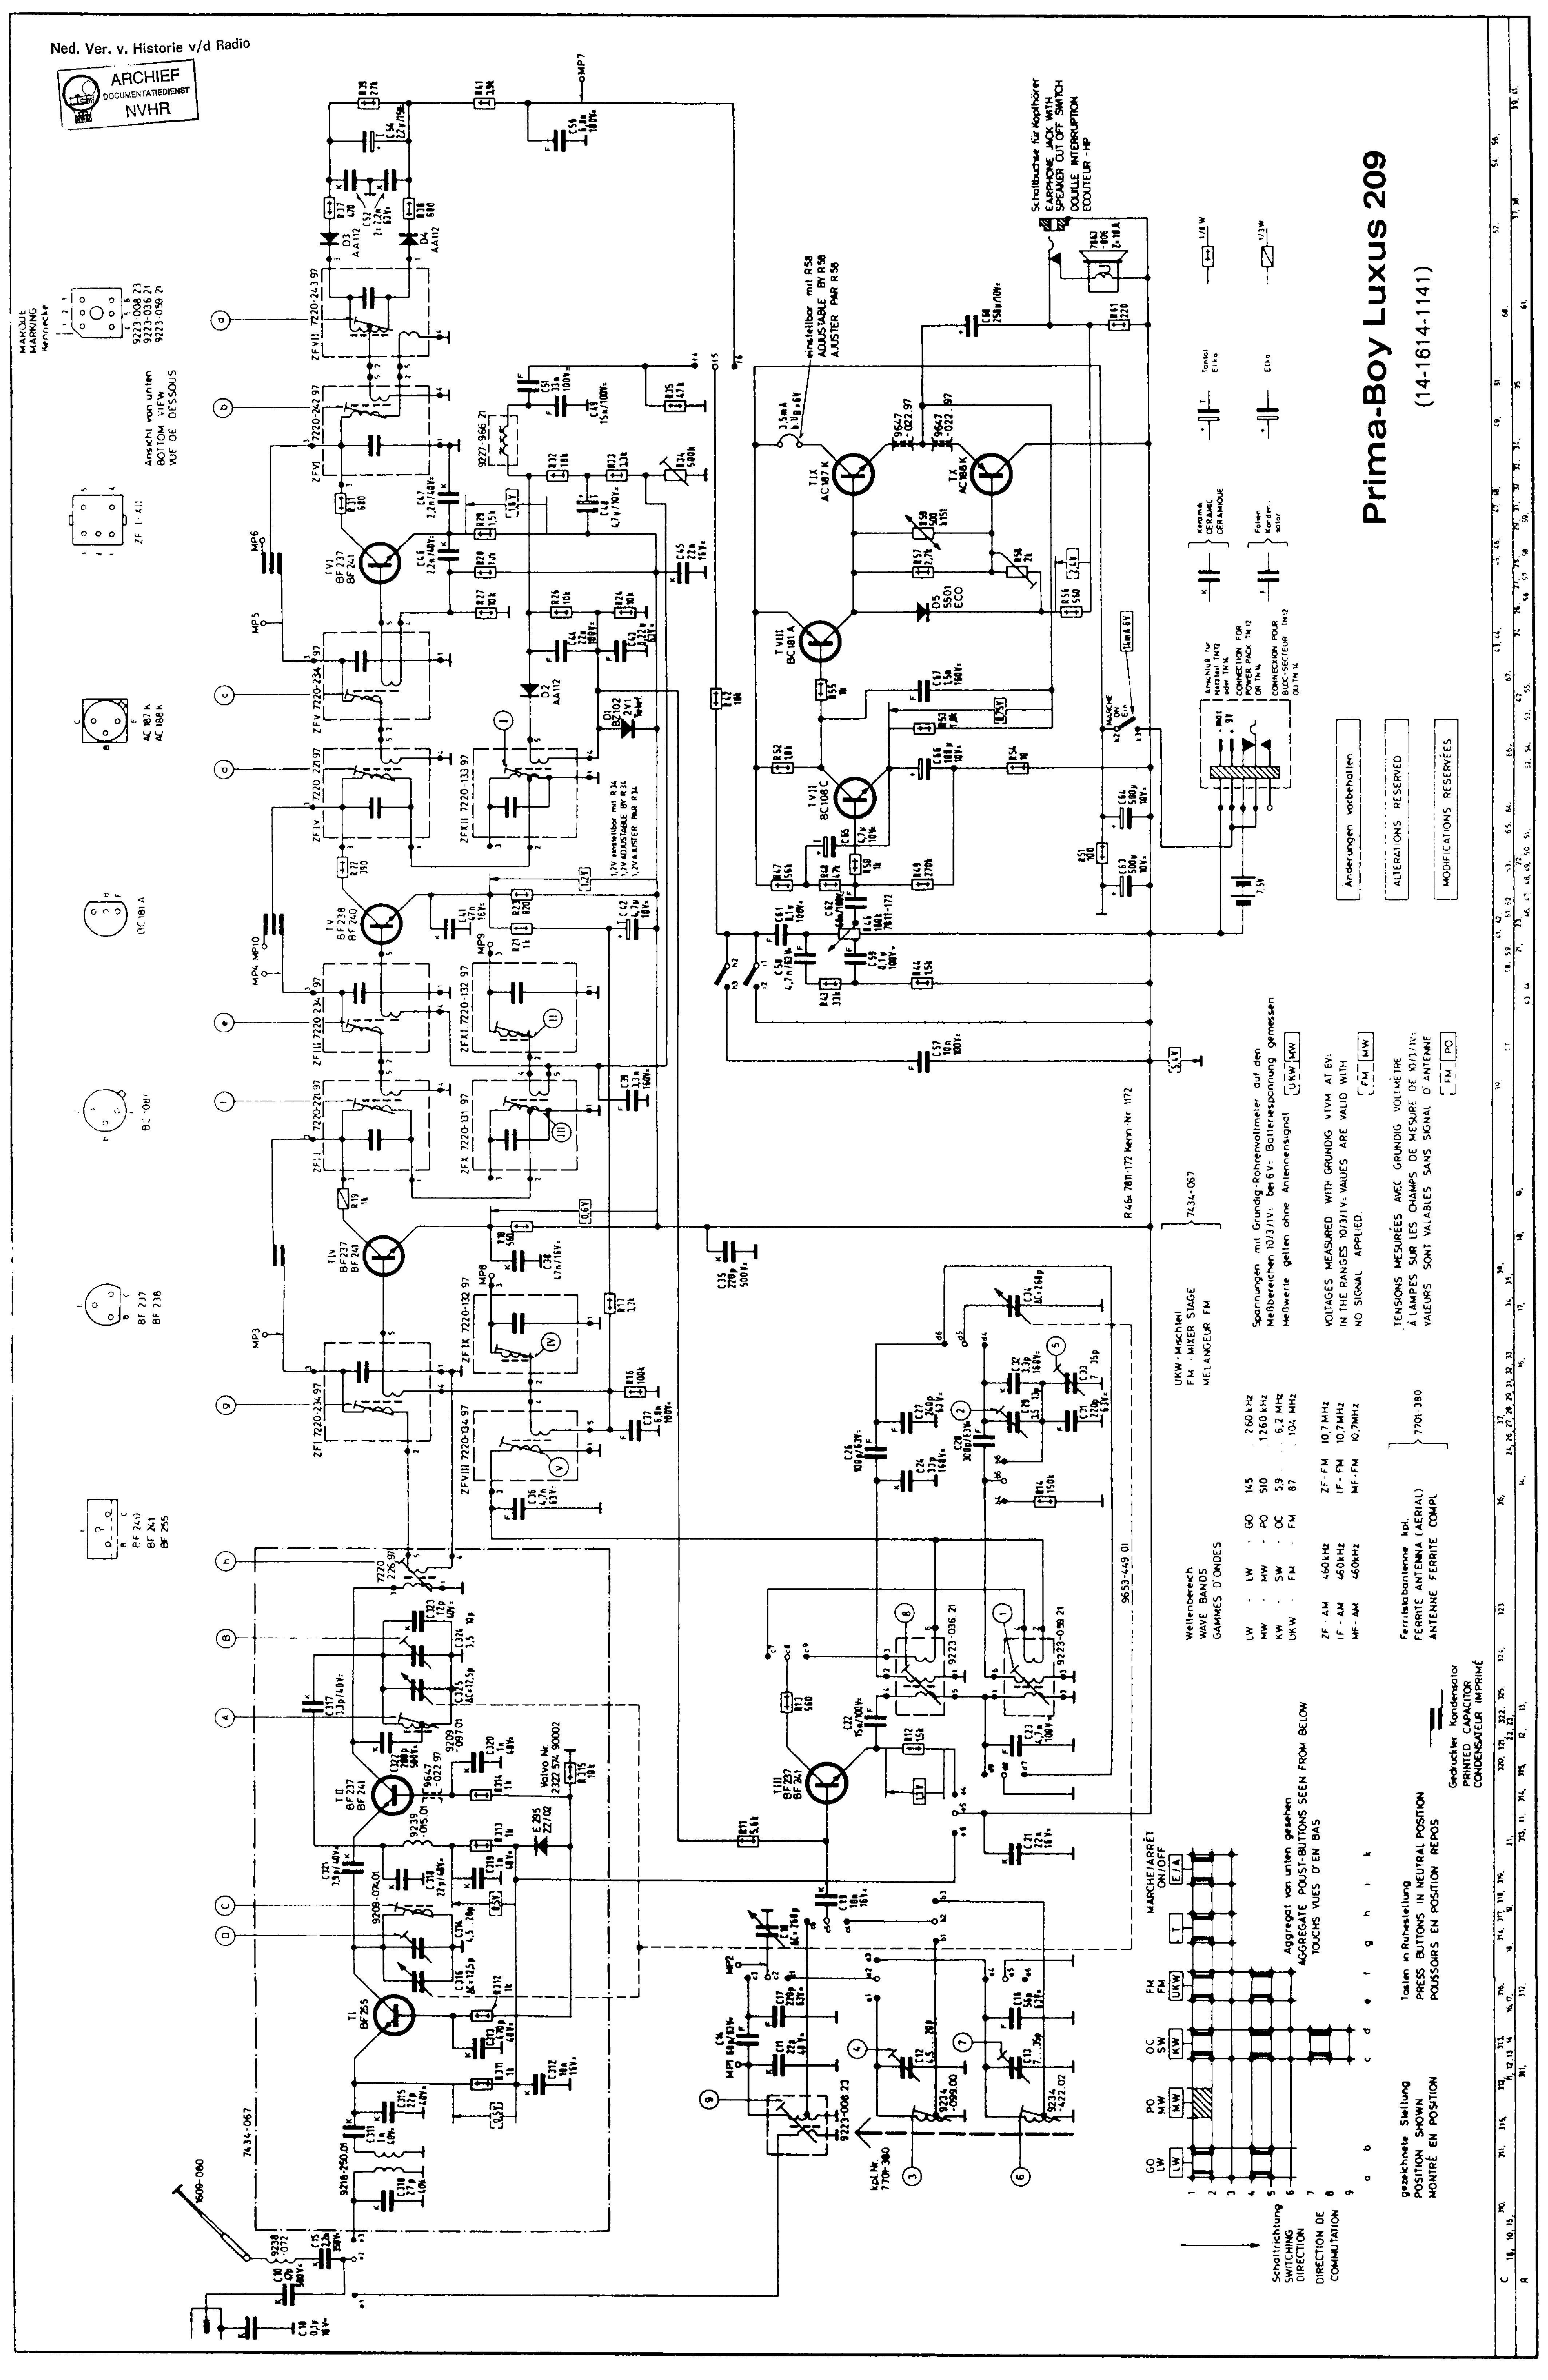 GRUNDIG 4035 W3D Service Manual free download, schematics